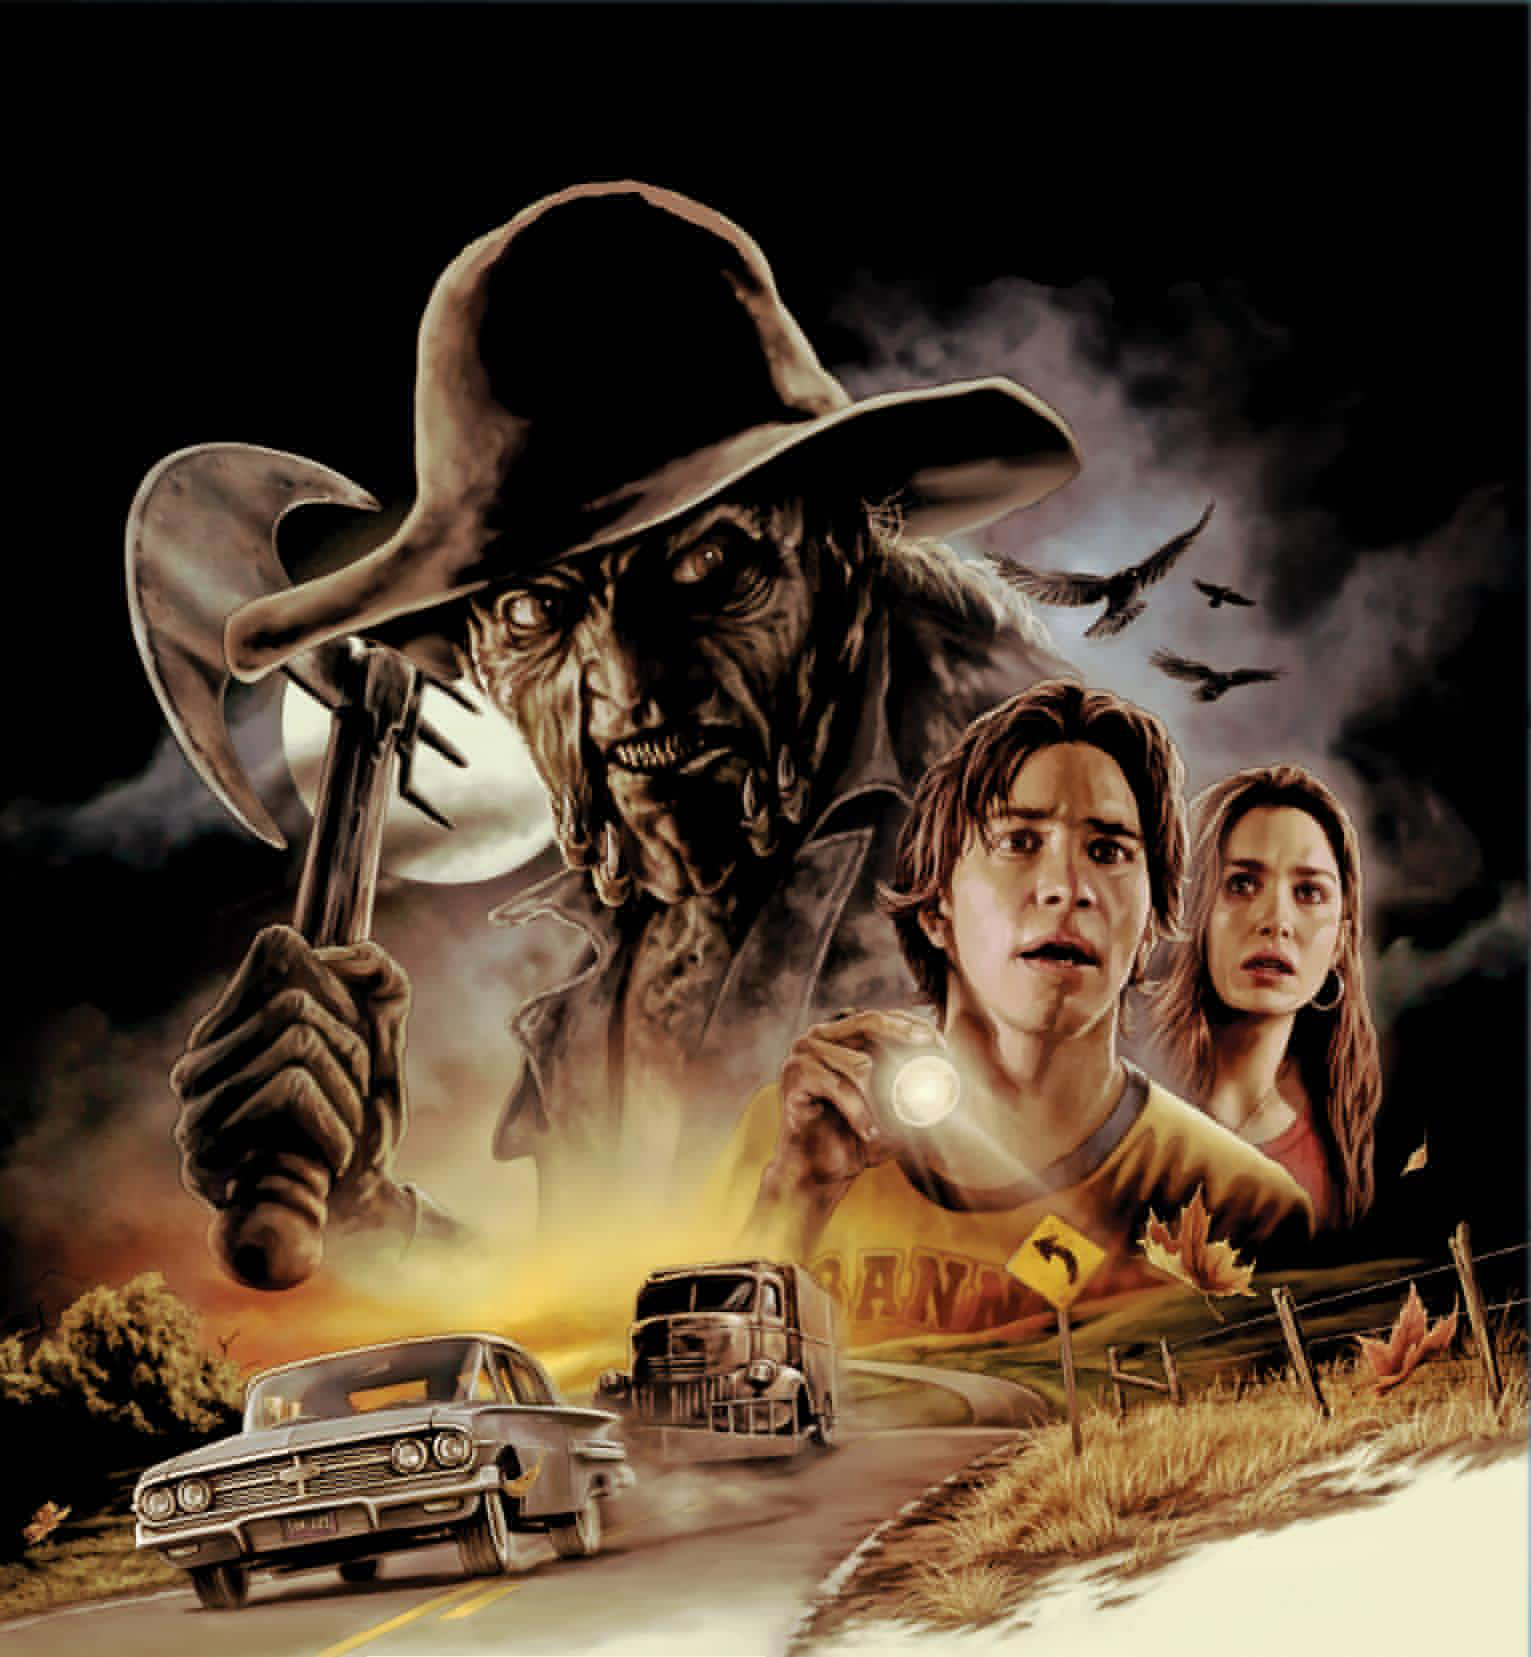 Jeepers Creepers 1 Jeepers Creepers Horror Movie Art Classic Horror Movies Monsters